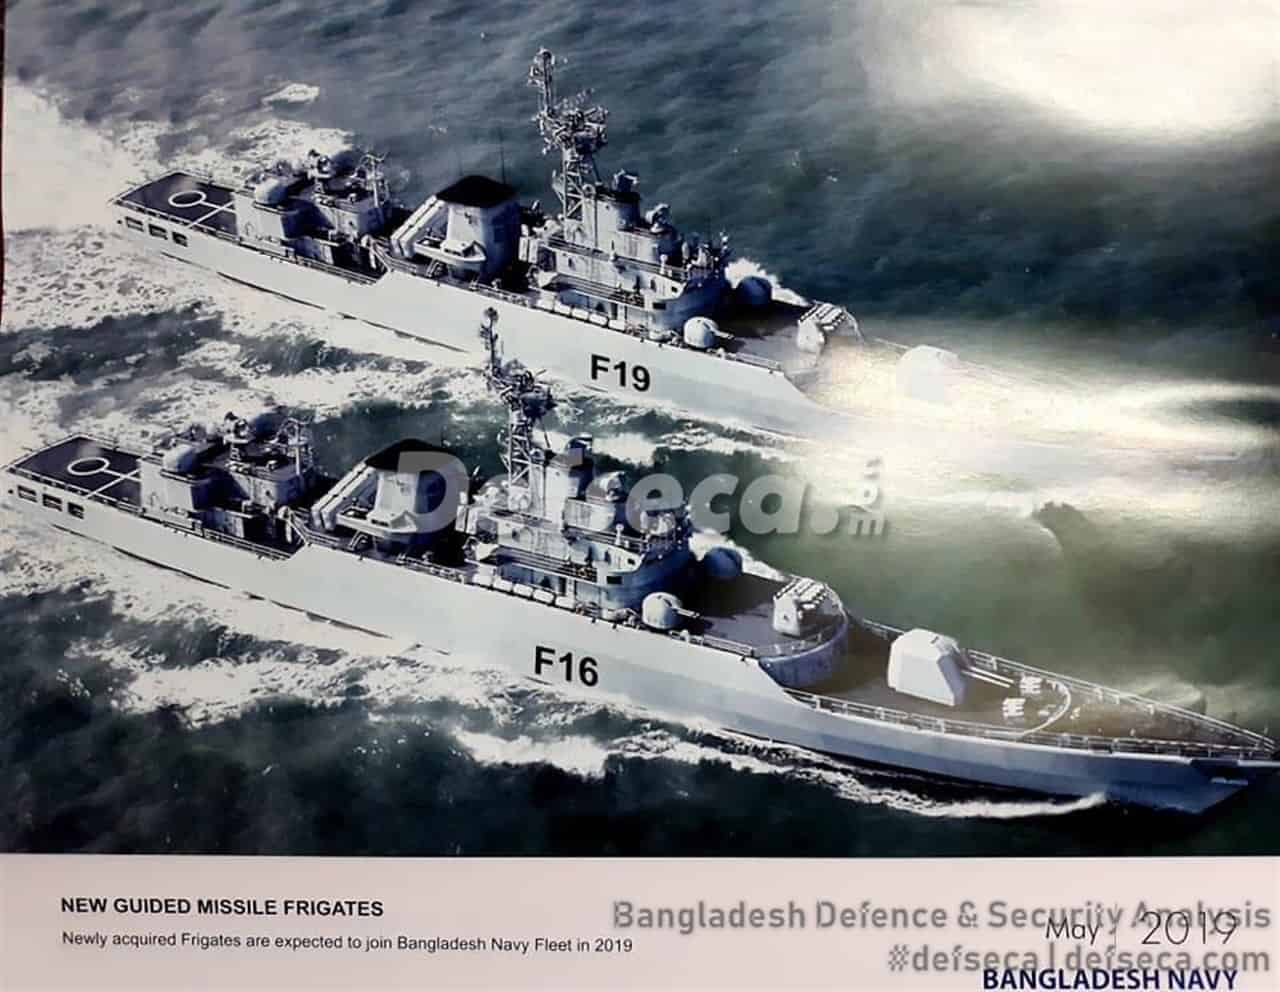 Jiangwei II class frigates to join Bangladesh Navy in 2019